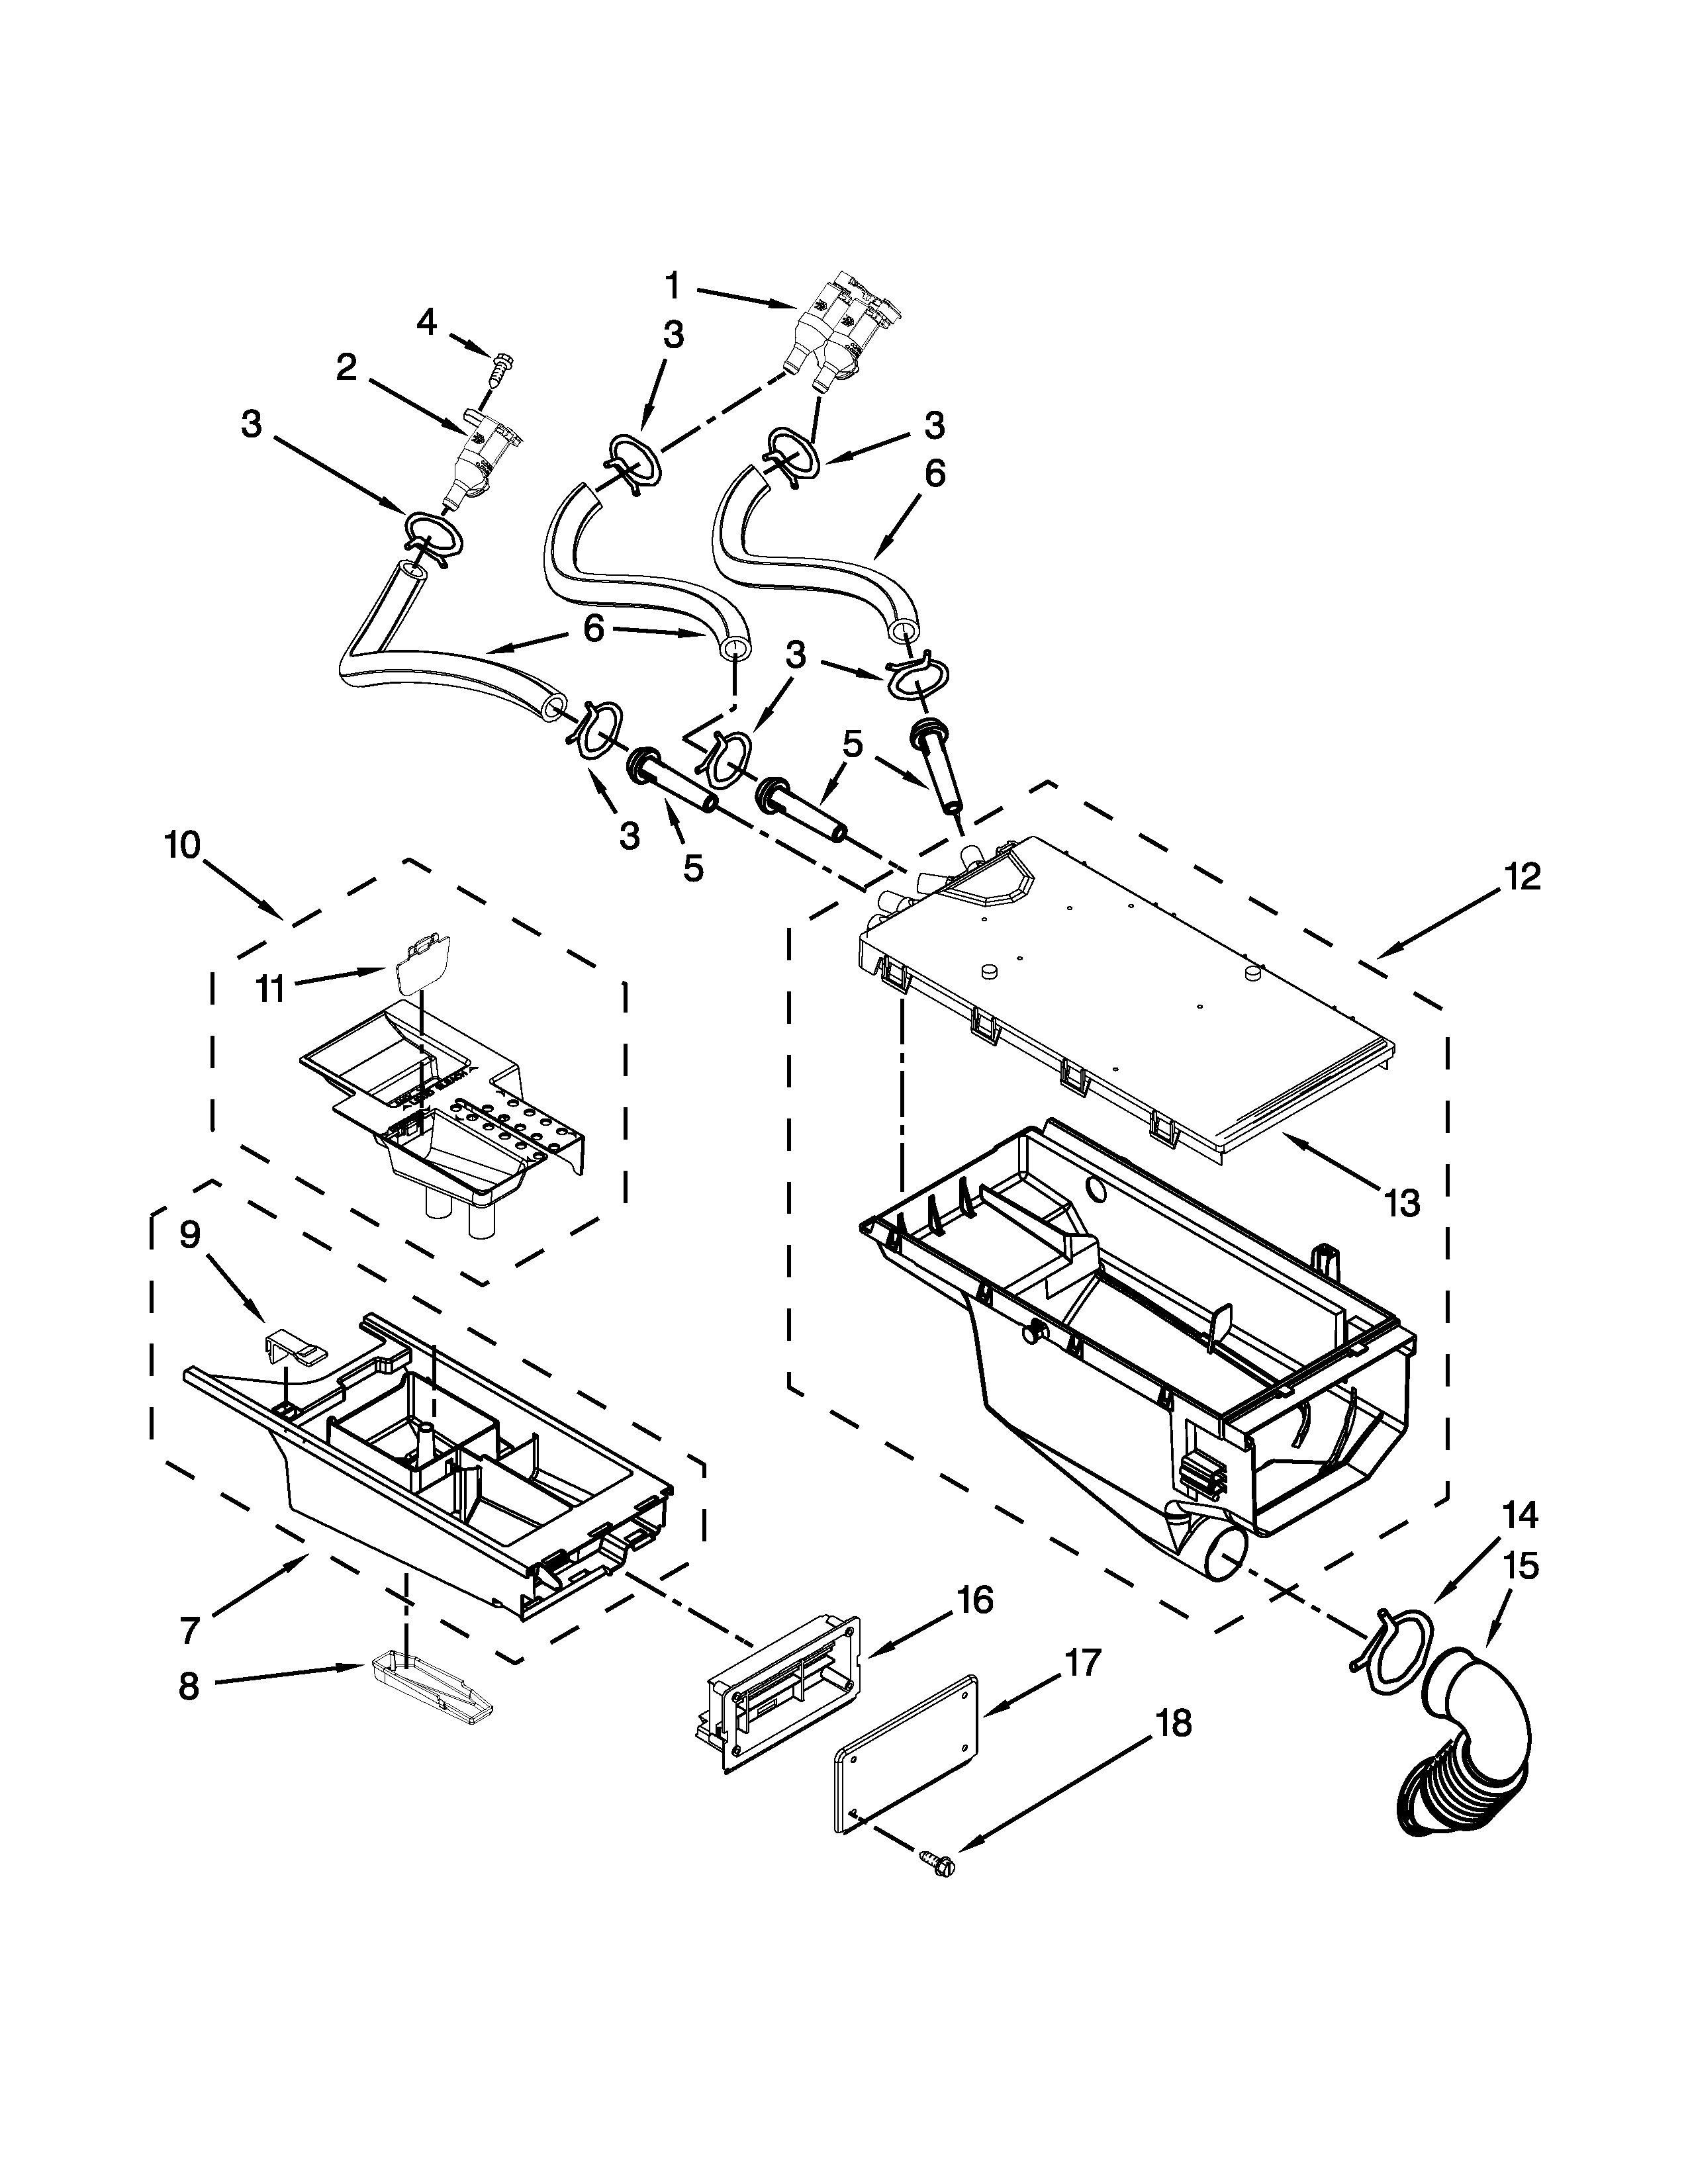 Maytag MLE20PDCYW0 dispenser parts diagram